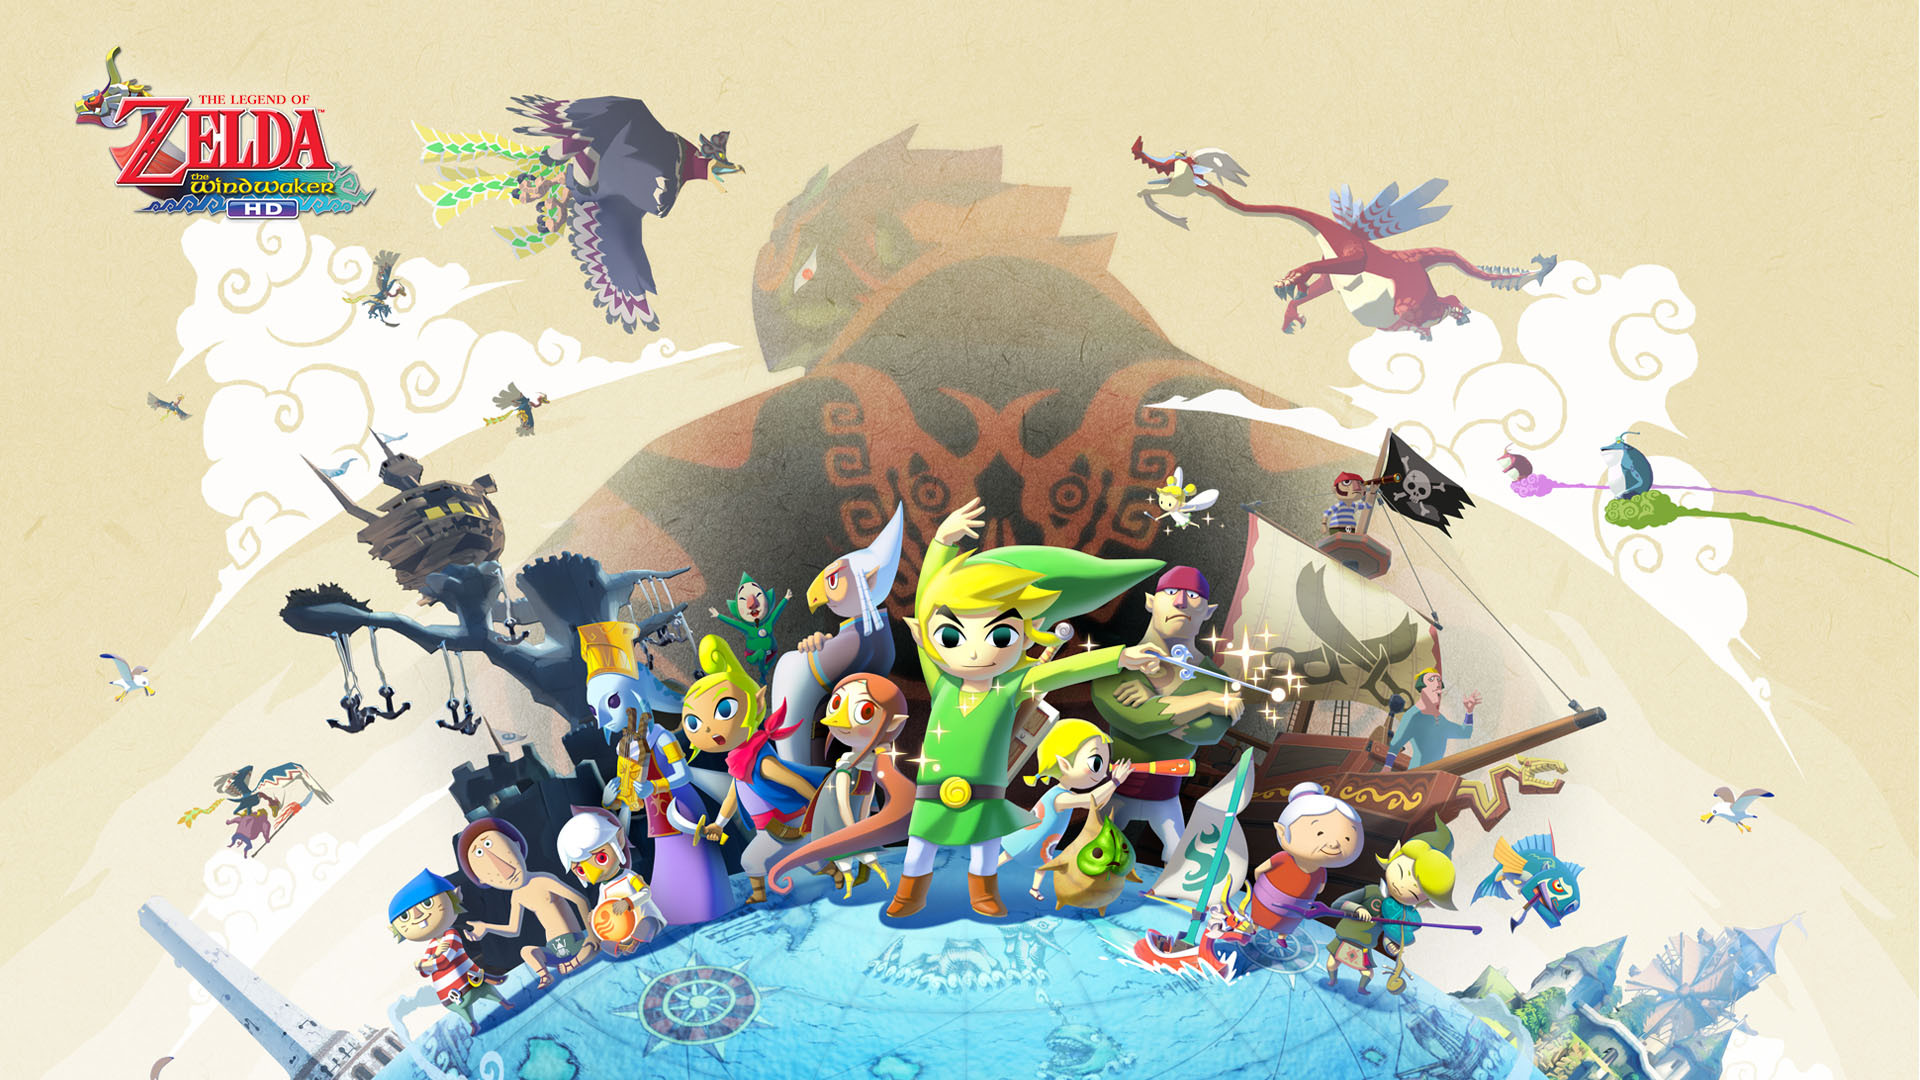 thelegendofzelda-windwaker-hd-001